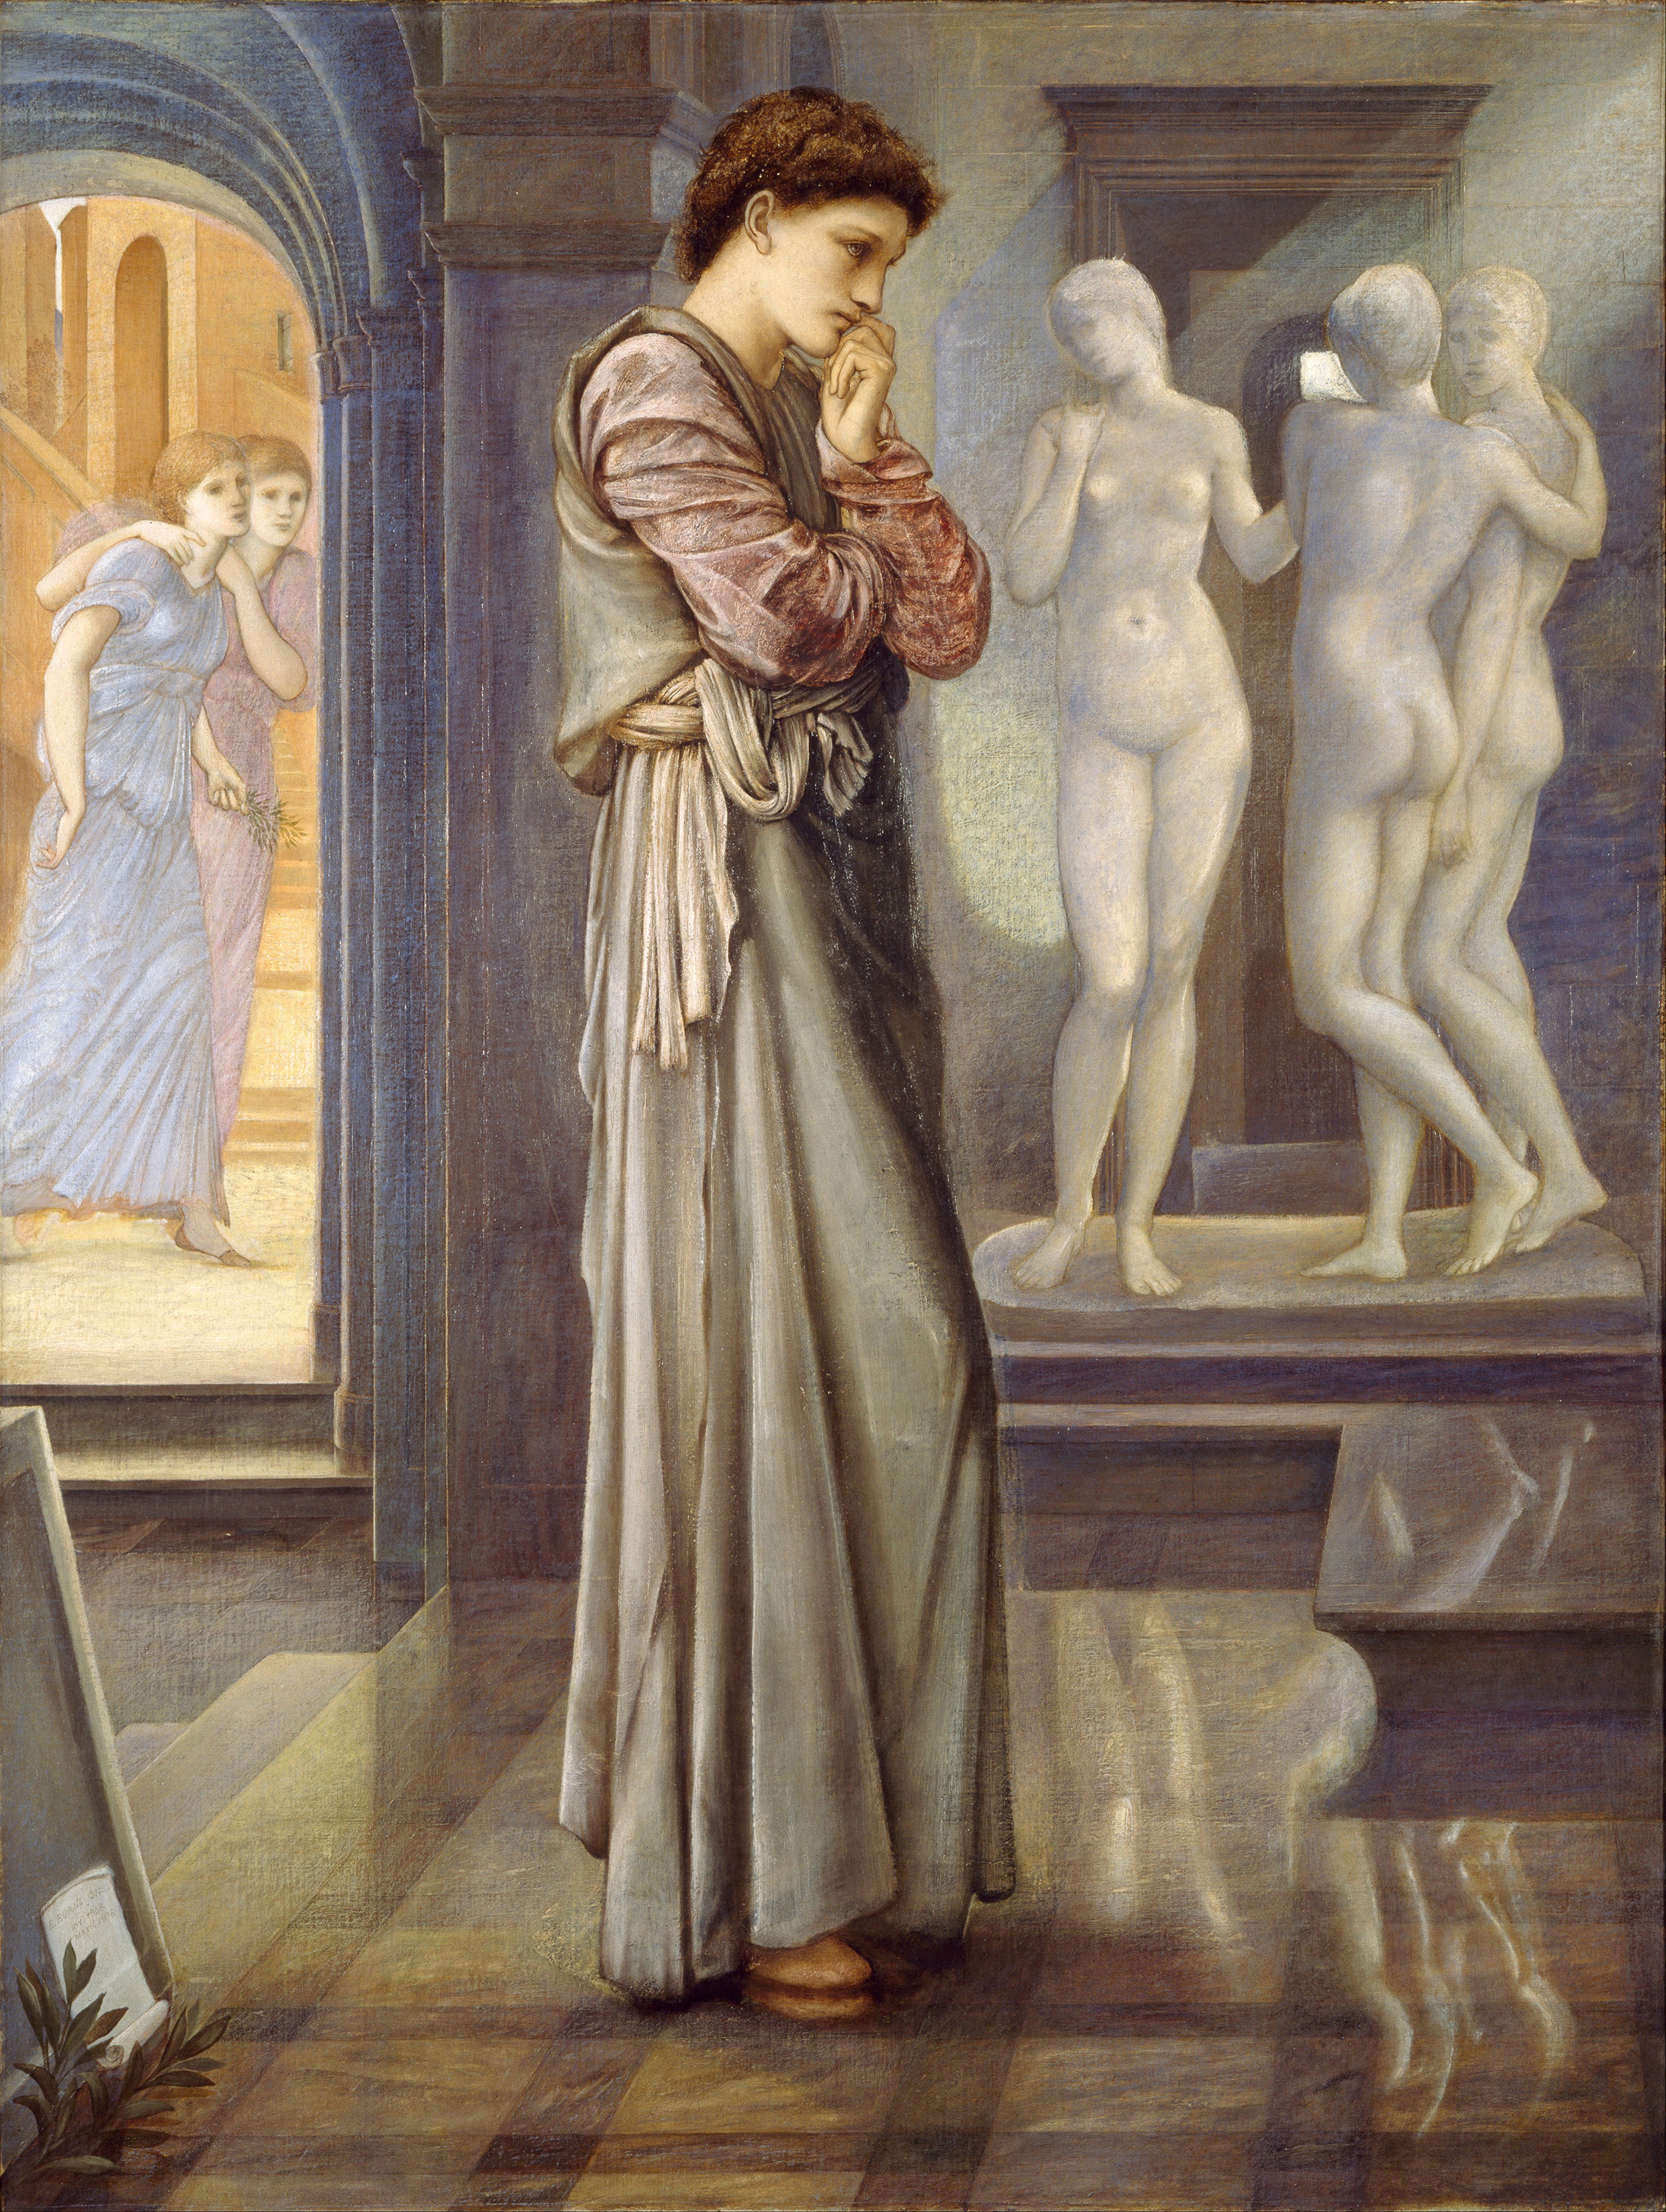 Pygmalion and the Image — The Heart Desires, 1878 — Edward Burne-Jones